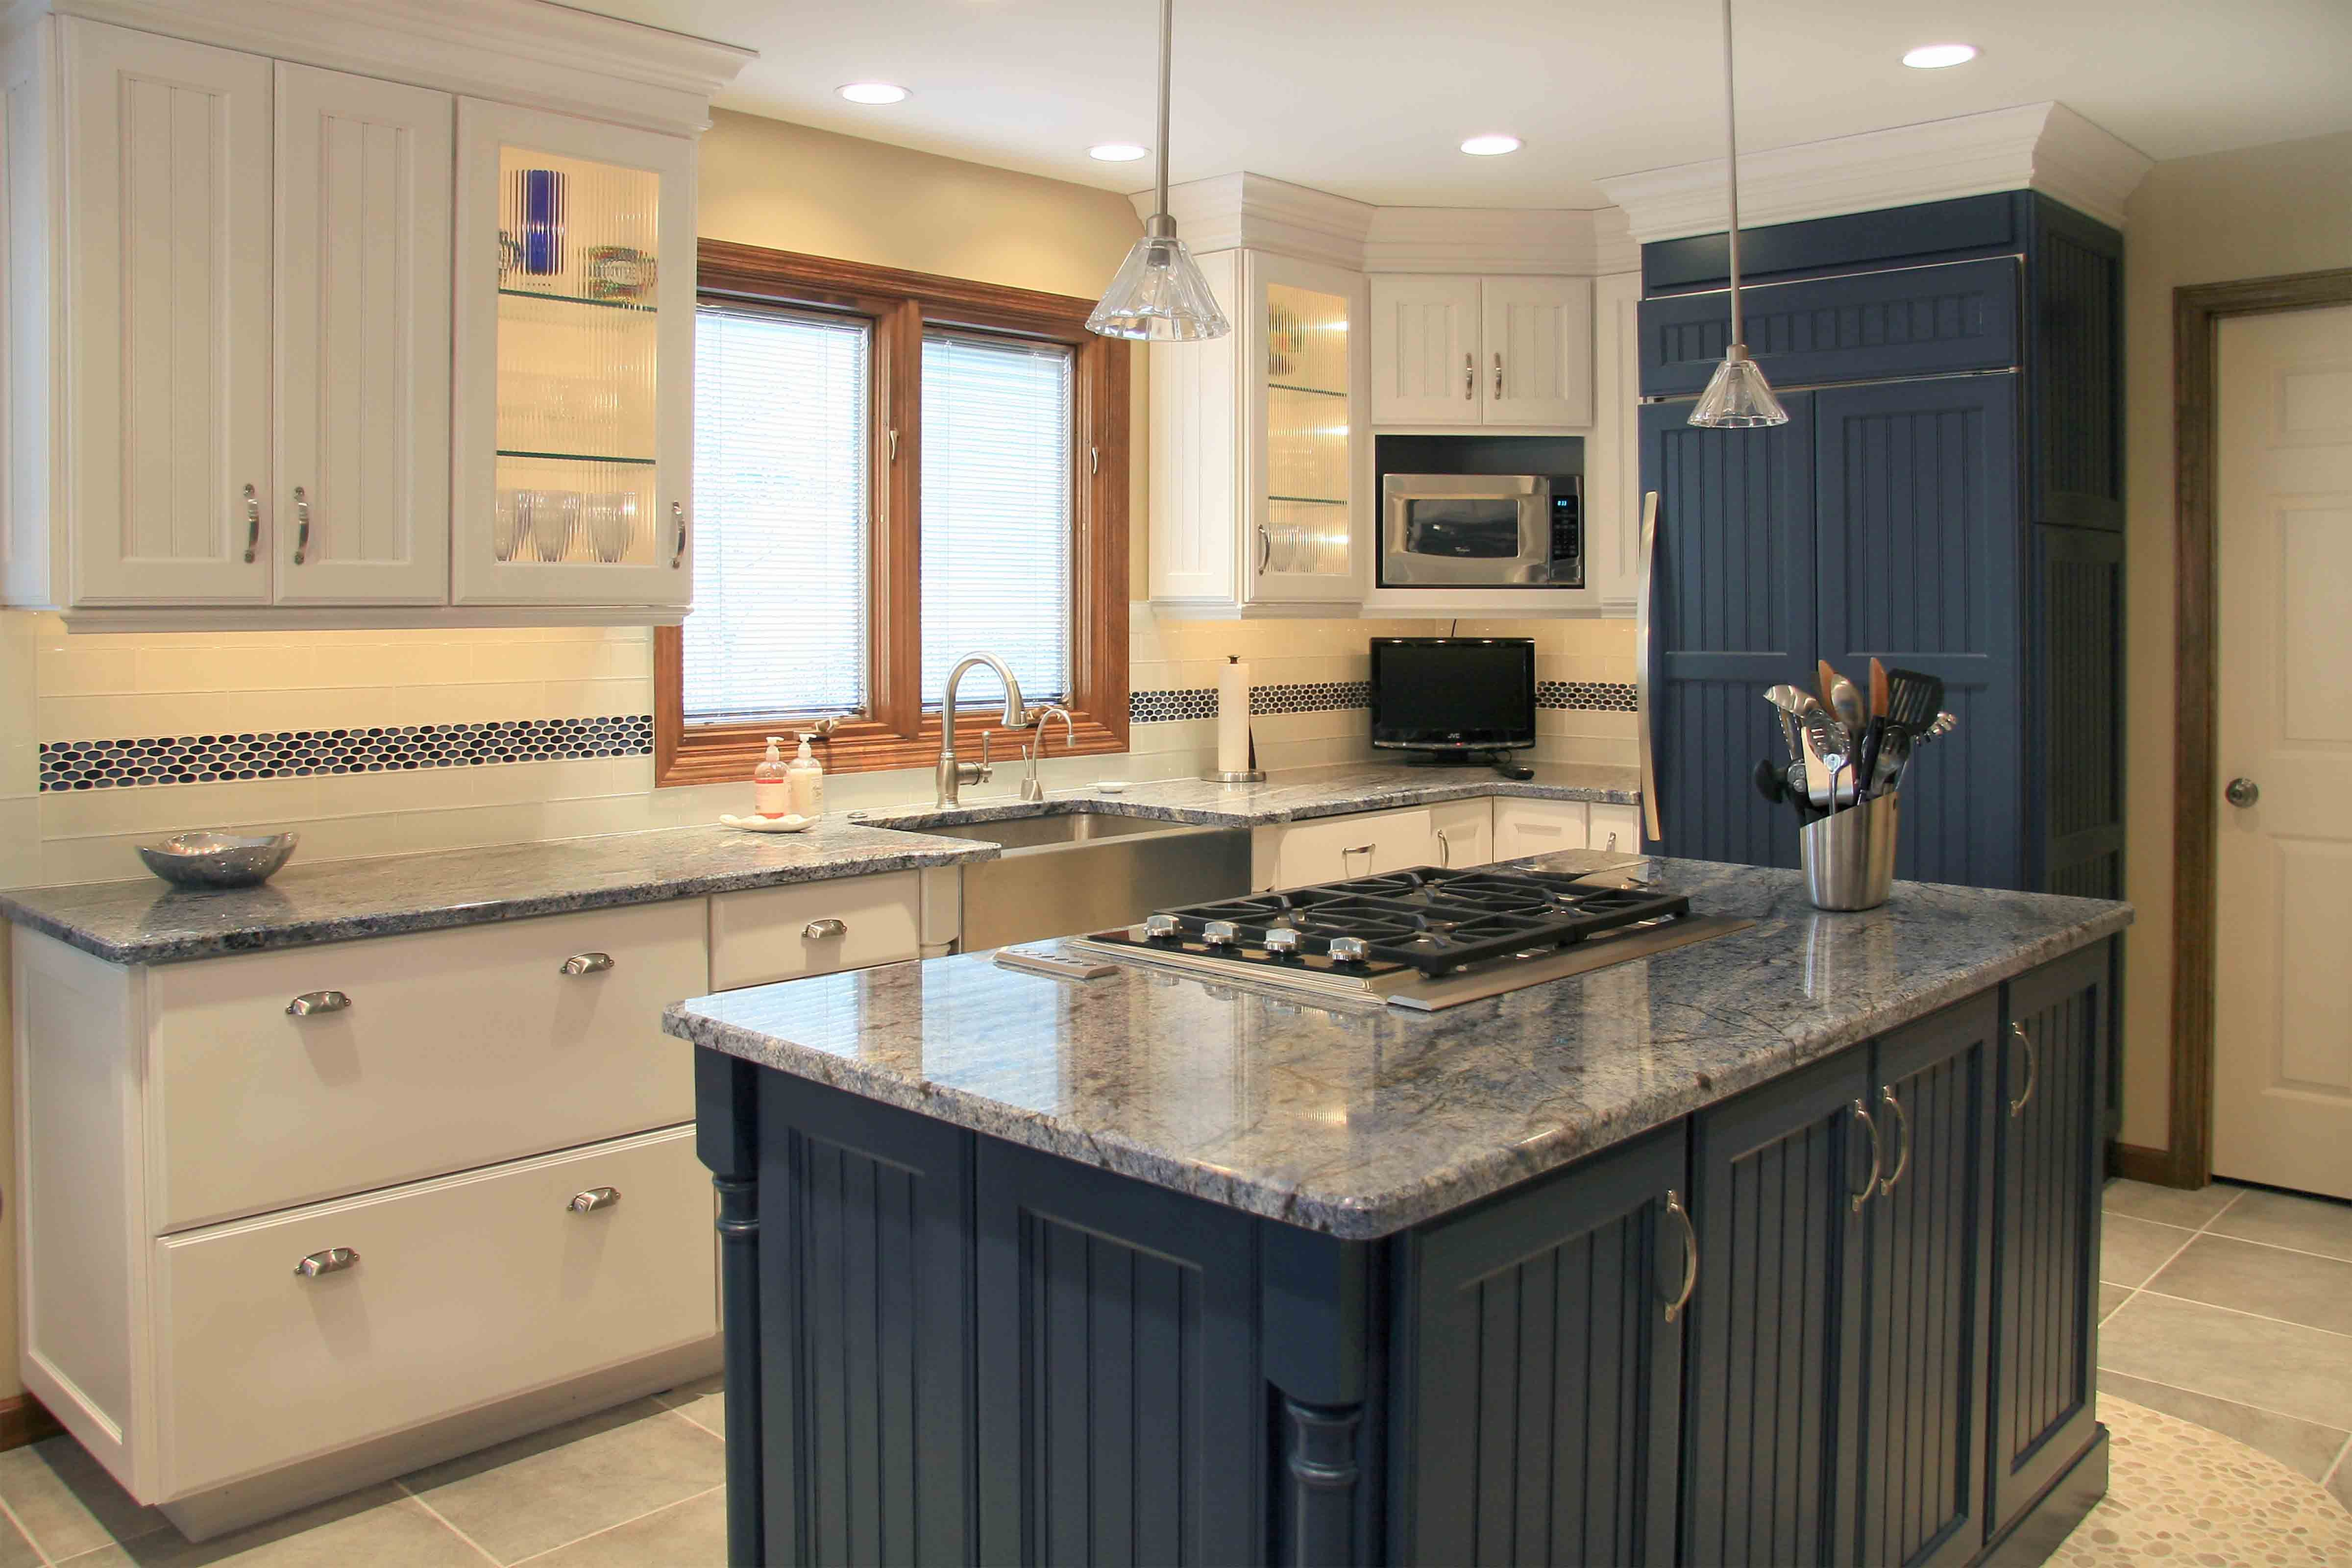 Feeling Blue We Love This Kitchen Color Scheme Repin This Blue Island In The Yawitz Kitchen Kitchen Inspiration Design Kitchen Design Kitchen Colour Schemes